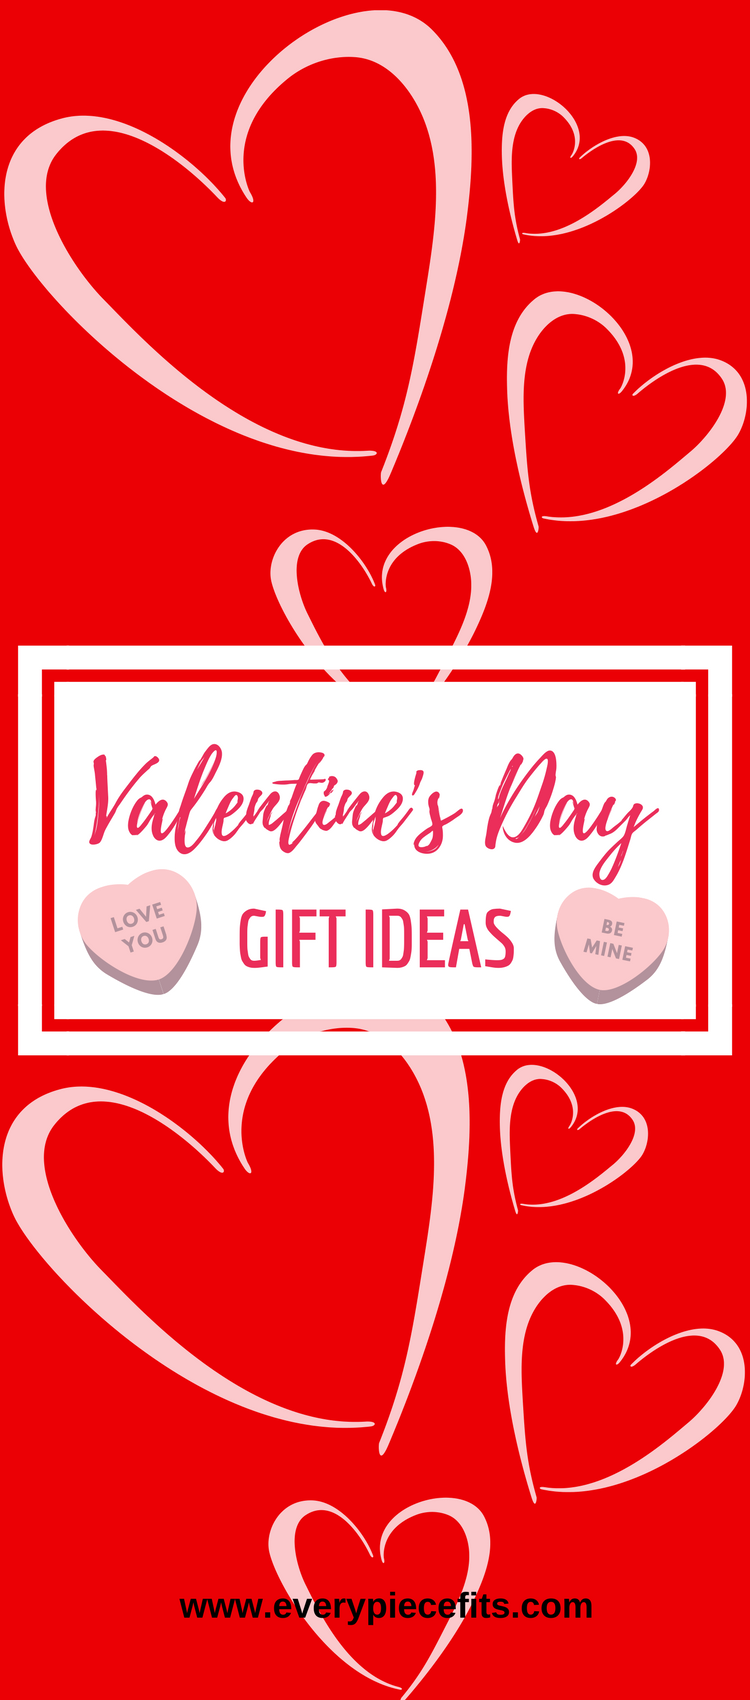 Valentine's Day Gift Ideas (1).png